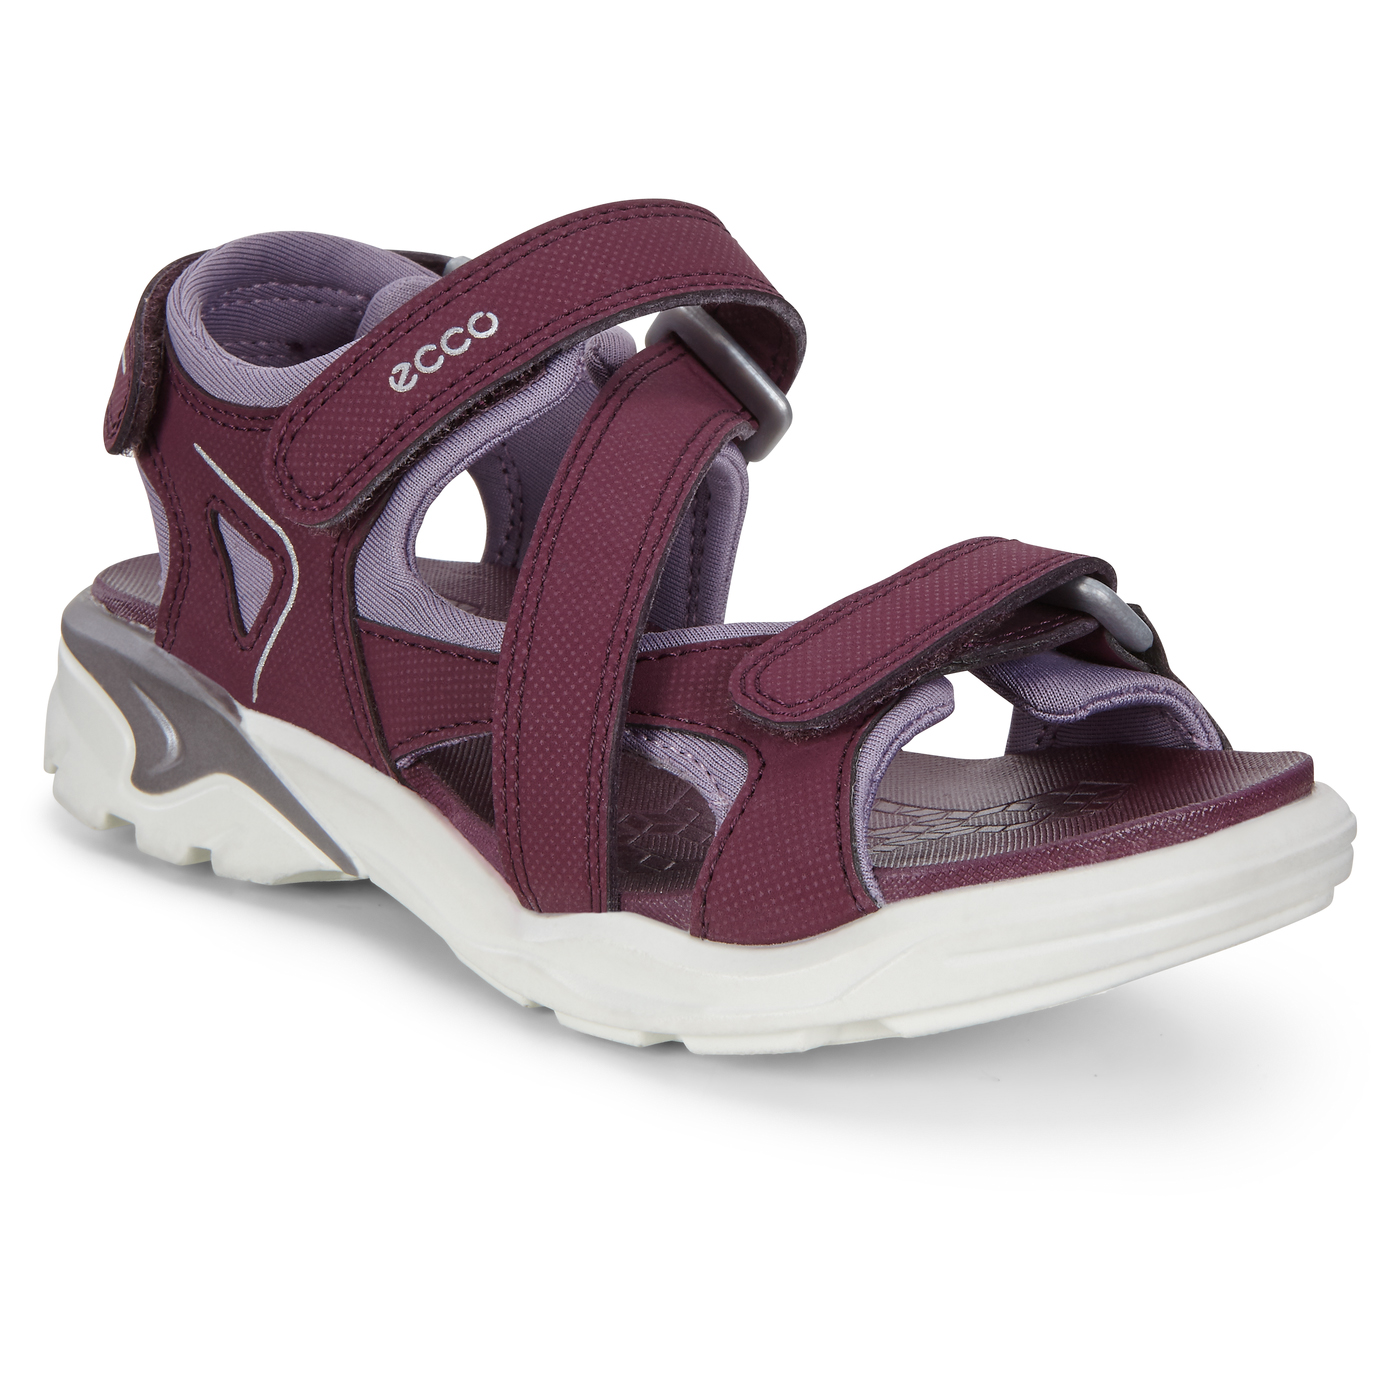 262c46c223 Ecco Biom Raft Synthetic - Sandals Kids | Buy online | Alpinetrek.co.uk